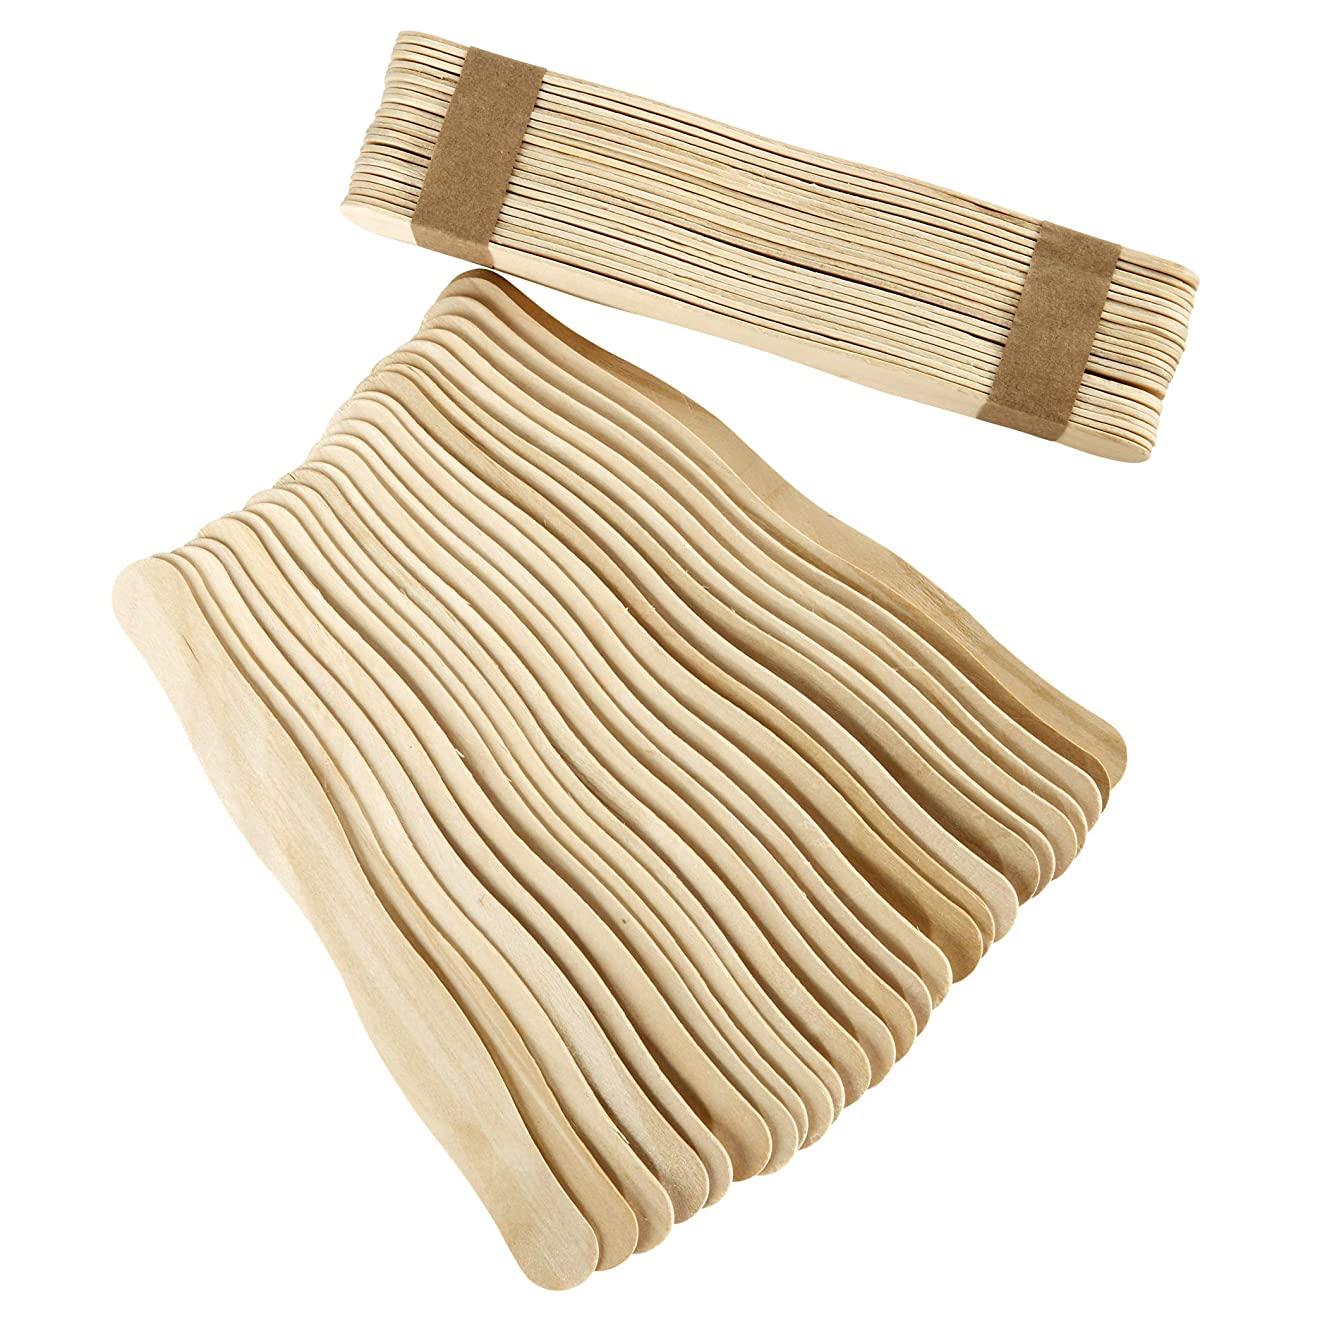 Artlicious - 100 Unfinished Natural Wood Wavy Popsicle Craft Sticks, 8